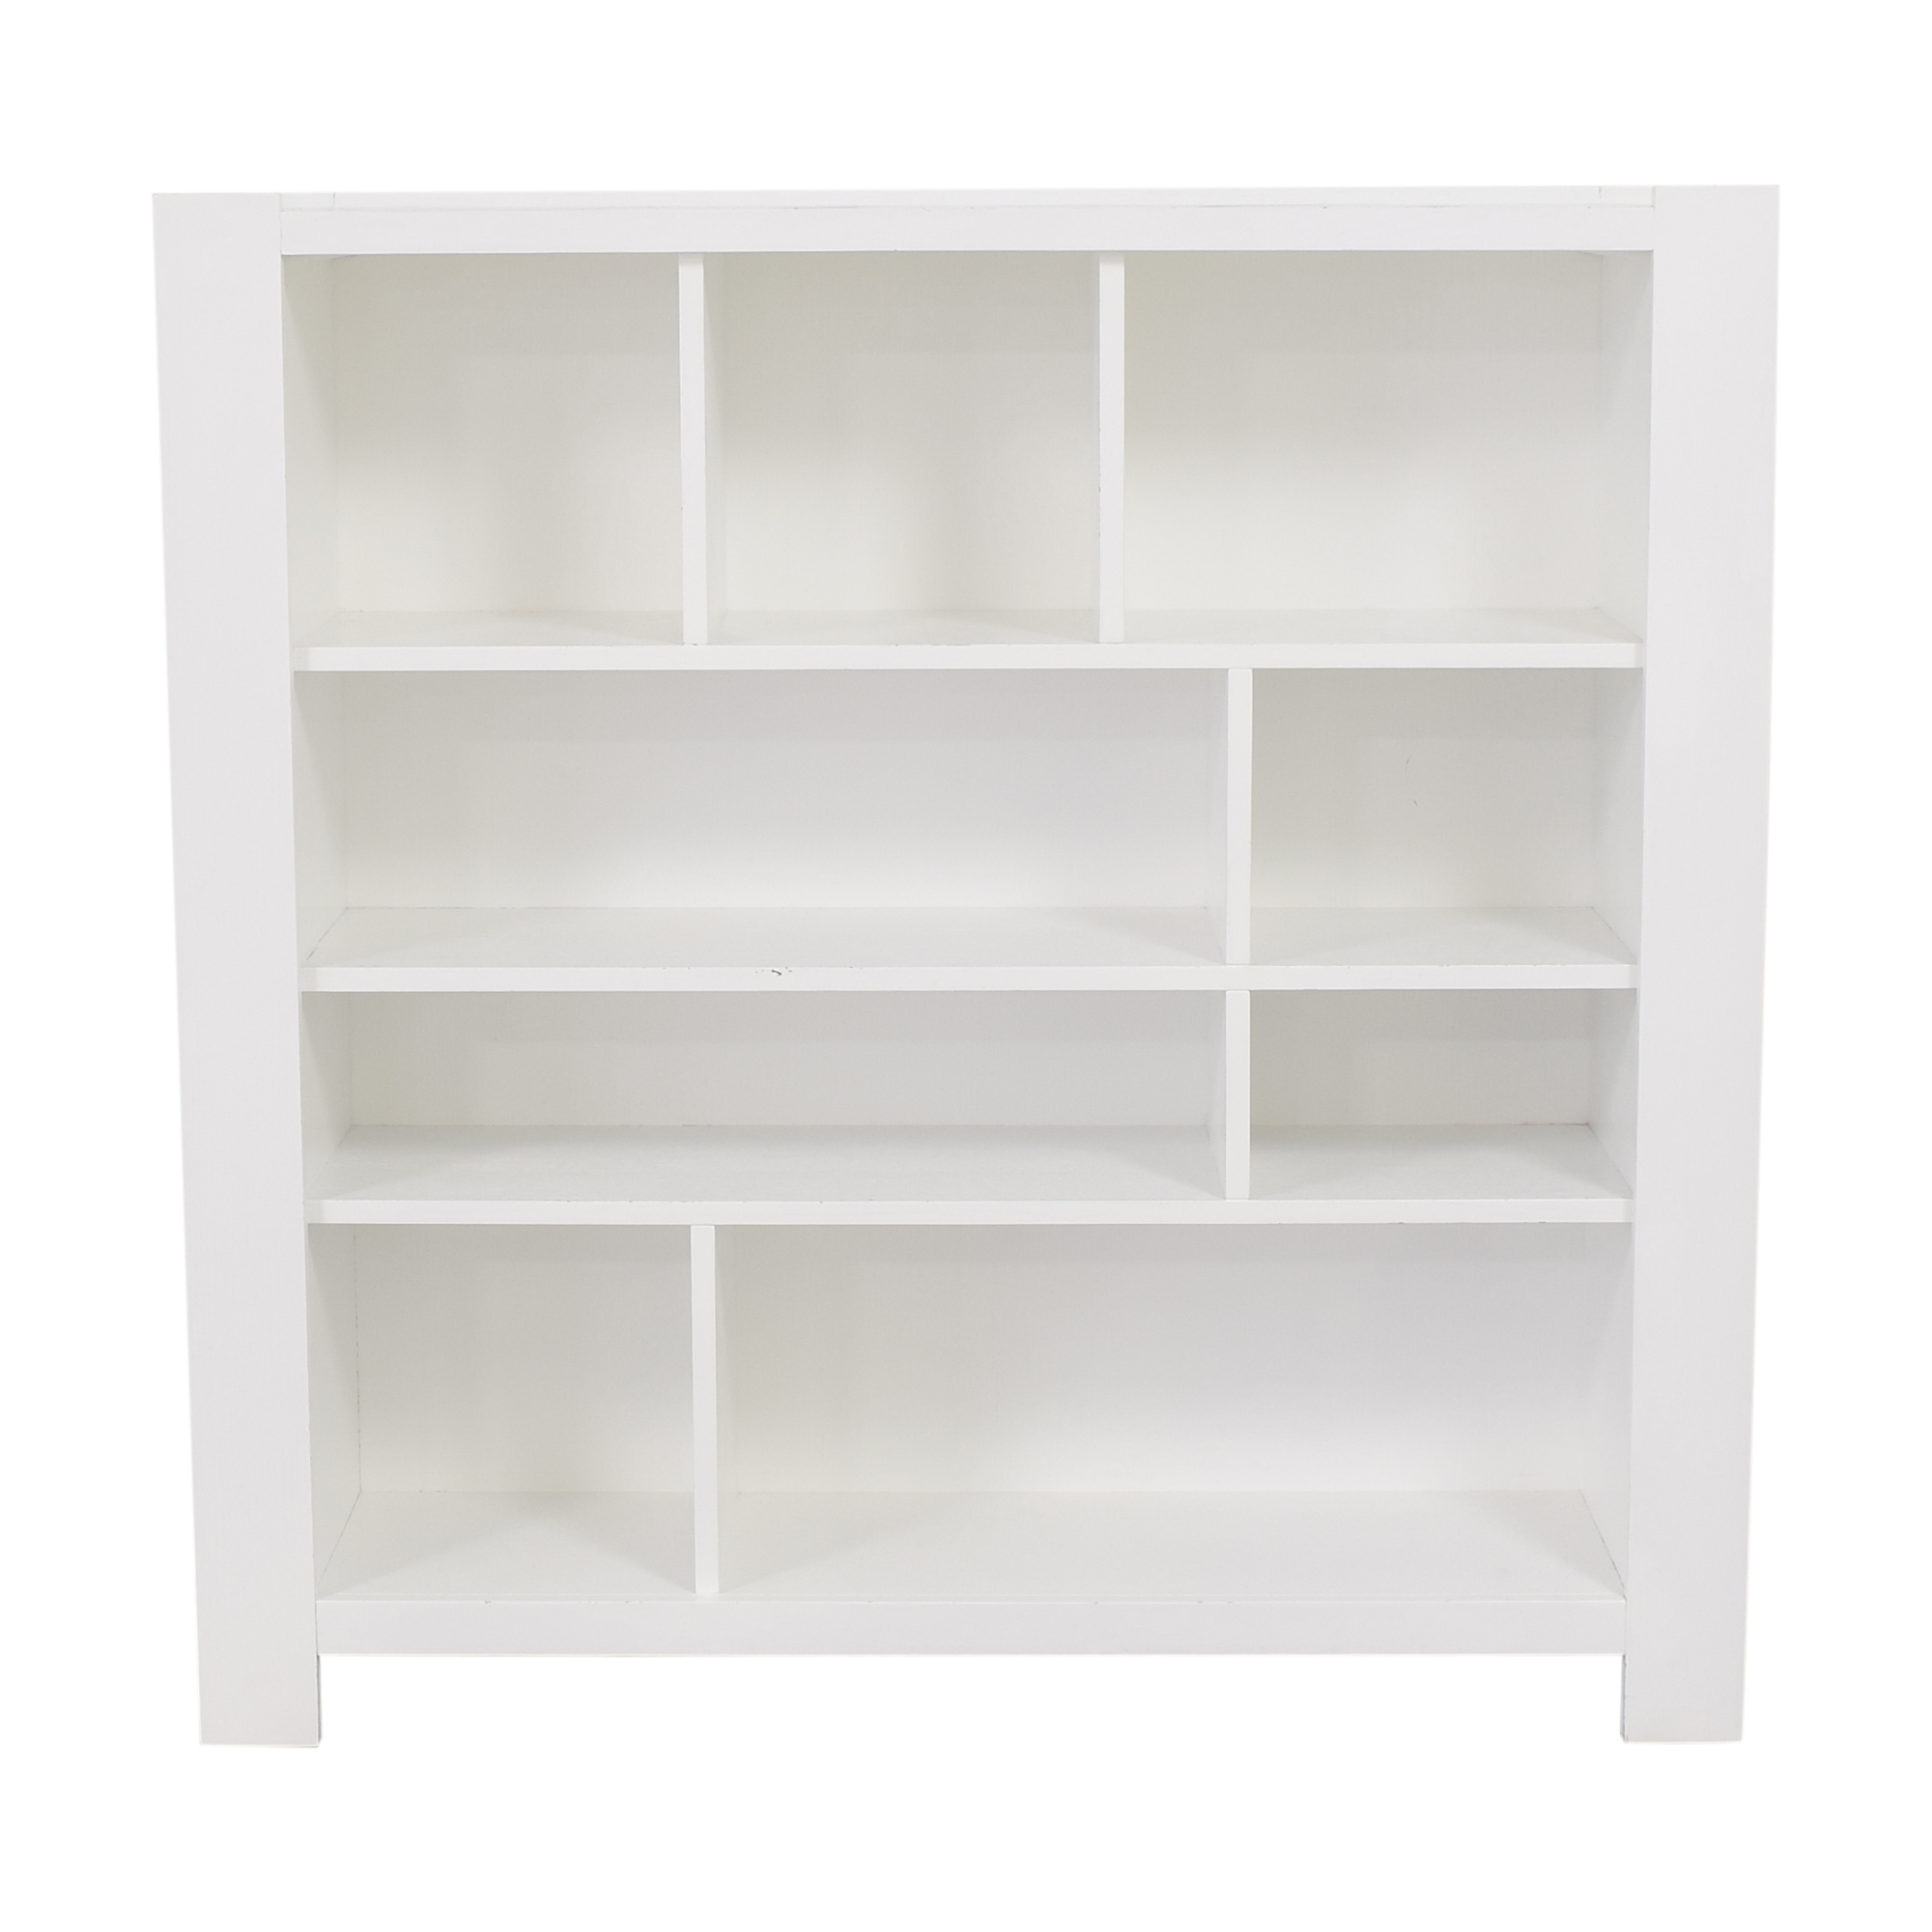 buy Land of Nod Compartment Department Bookcase Land of Nod Bookcases & Shelving